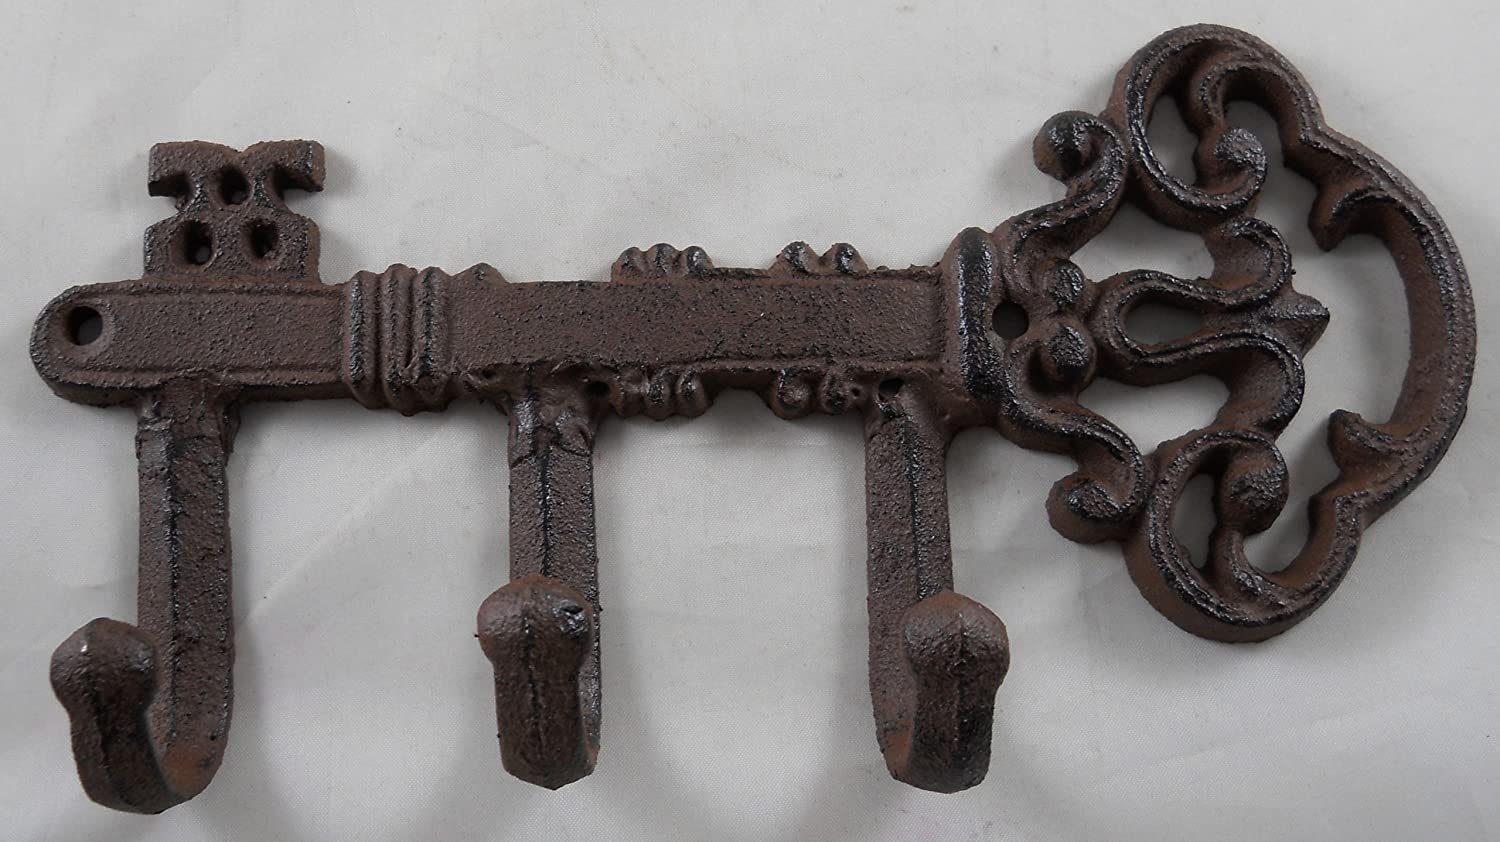 Key Shaped Key Rack Vintage Key Shaped Wall Hooks Decorative Key Hanger